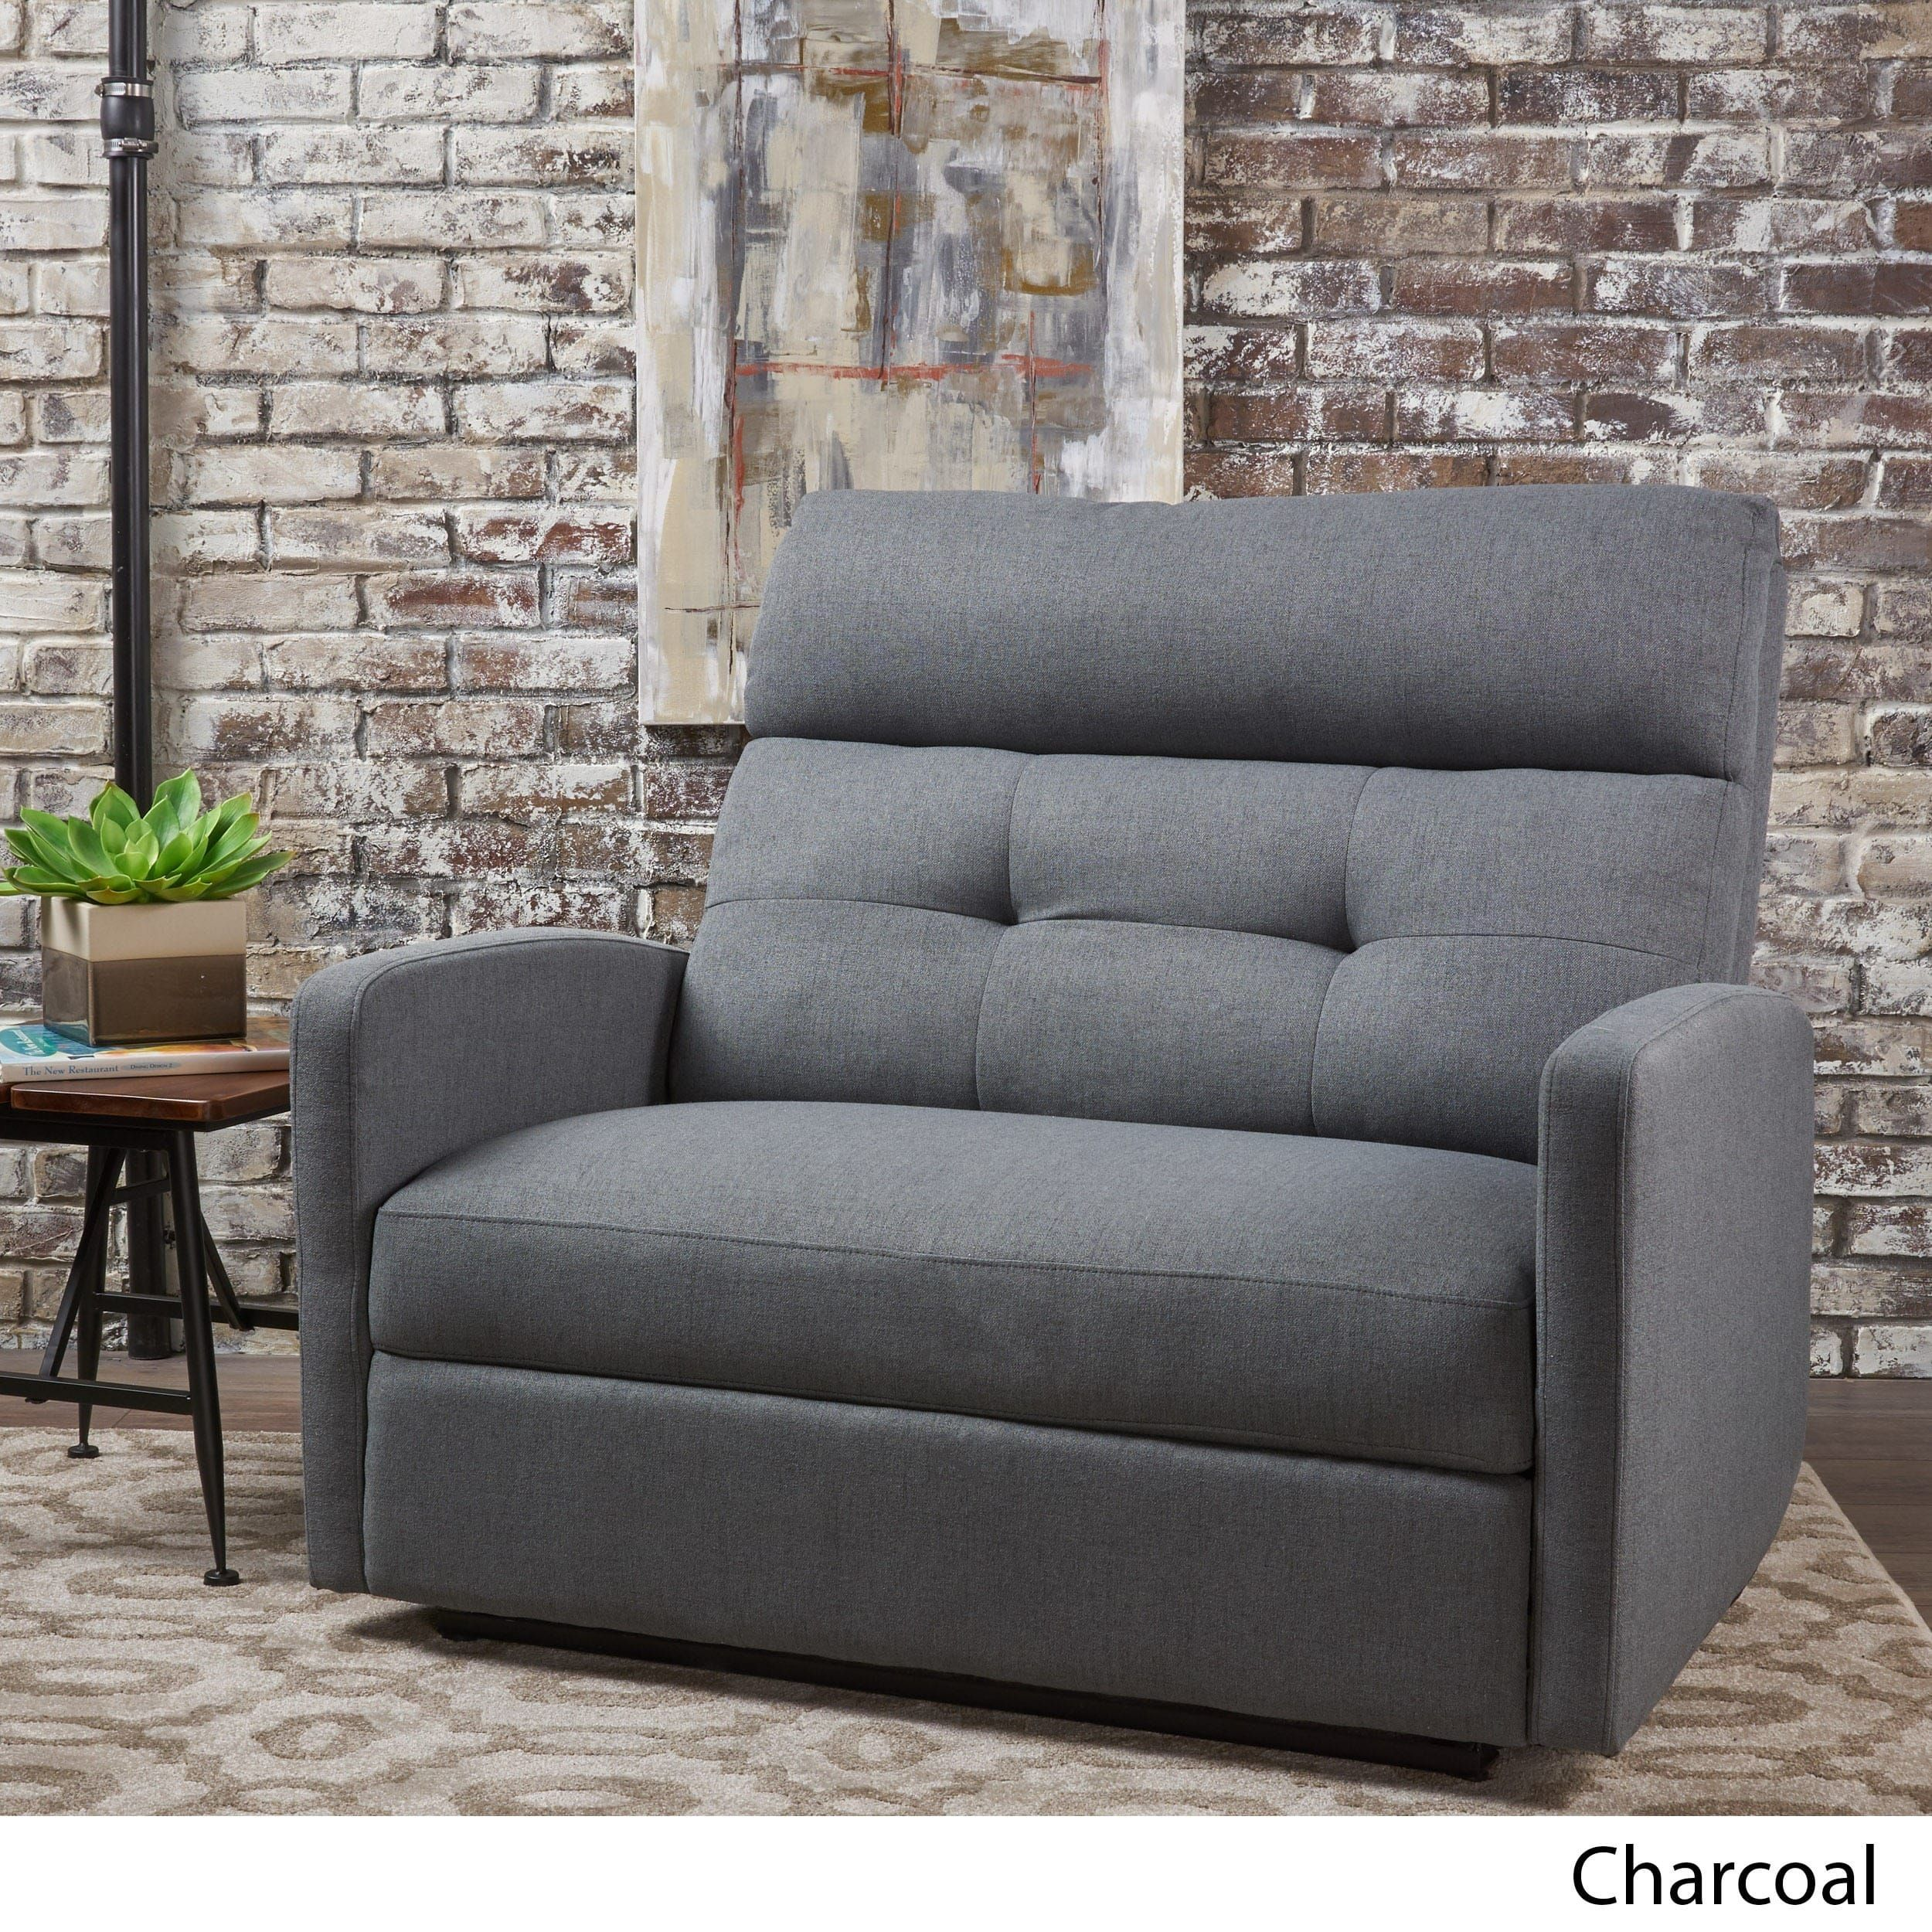 Halima Fabric 2 Seater Recliner Club Chair By Christopher Knight Home  (Charcoal (Grey)), Size Oversized